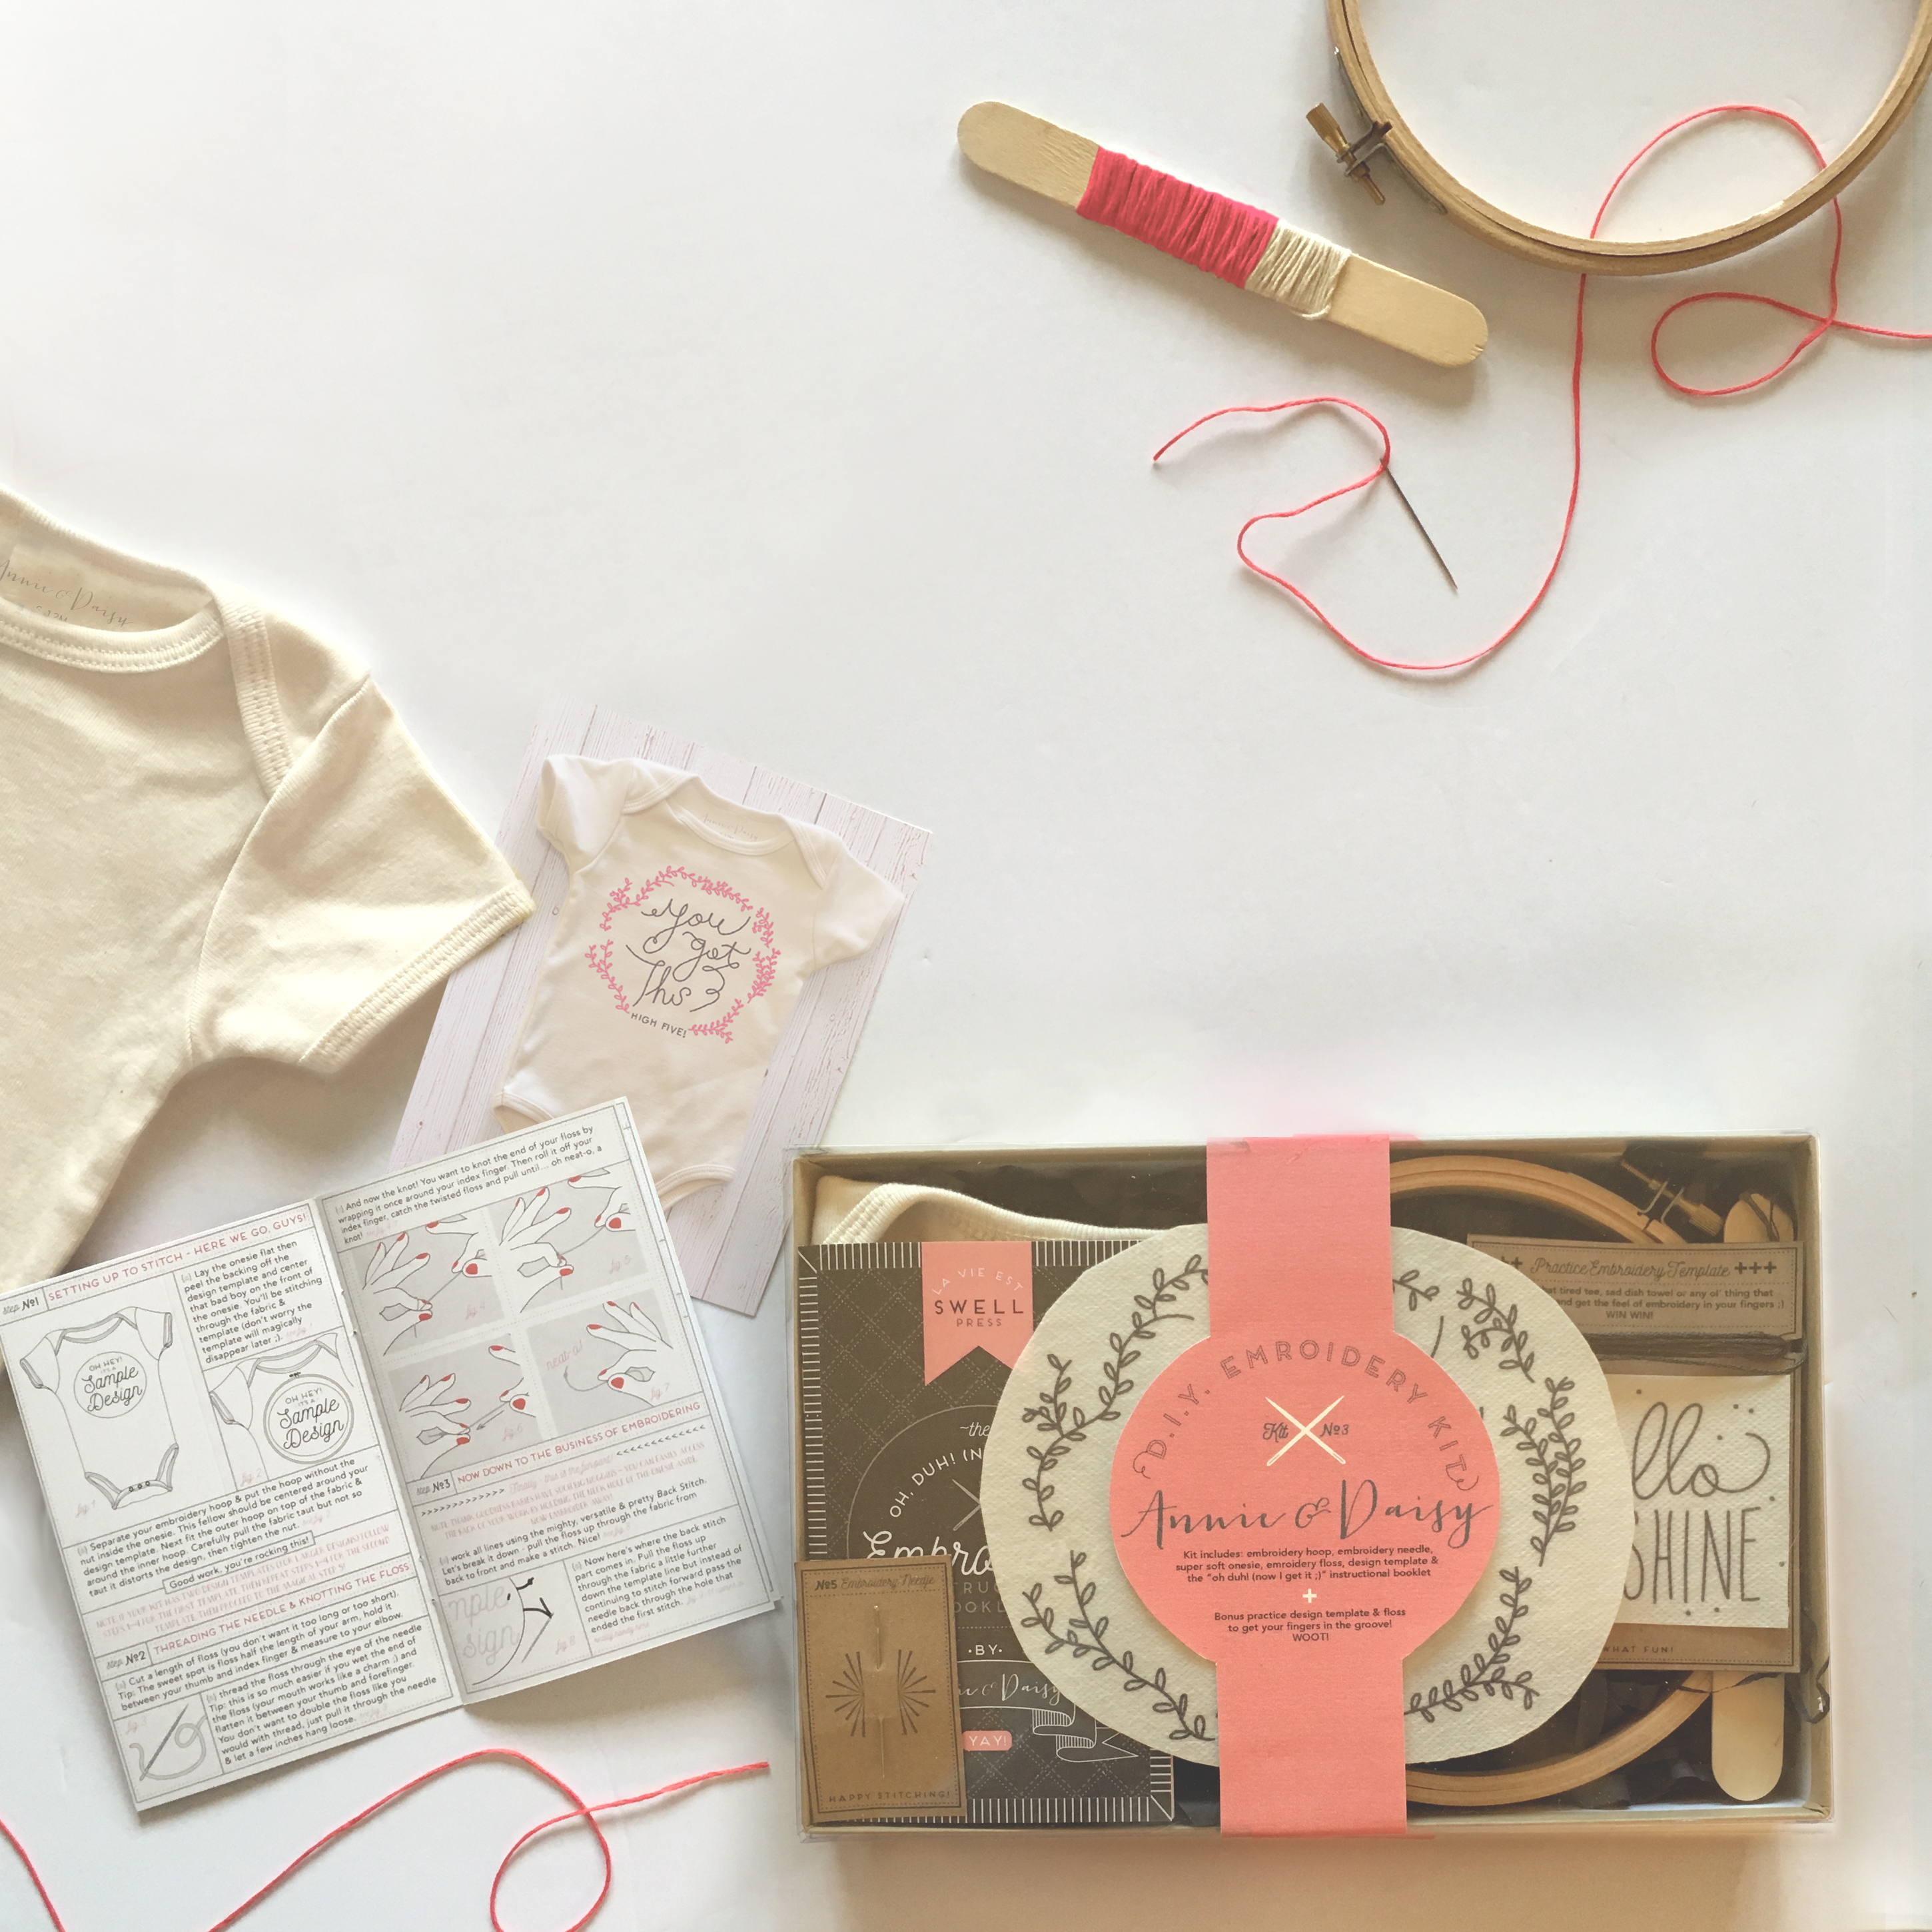 DIY onesie embroidery kit for new moms